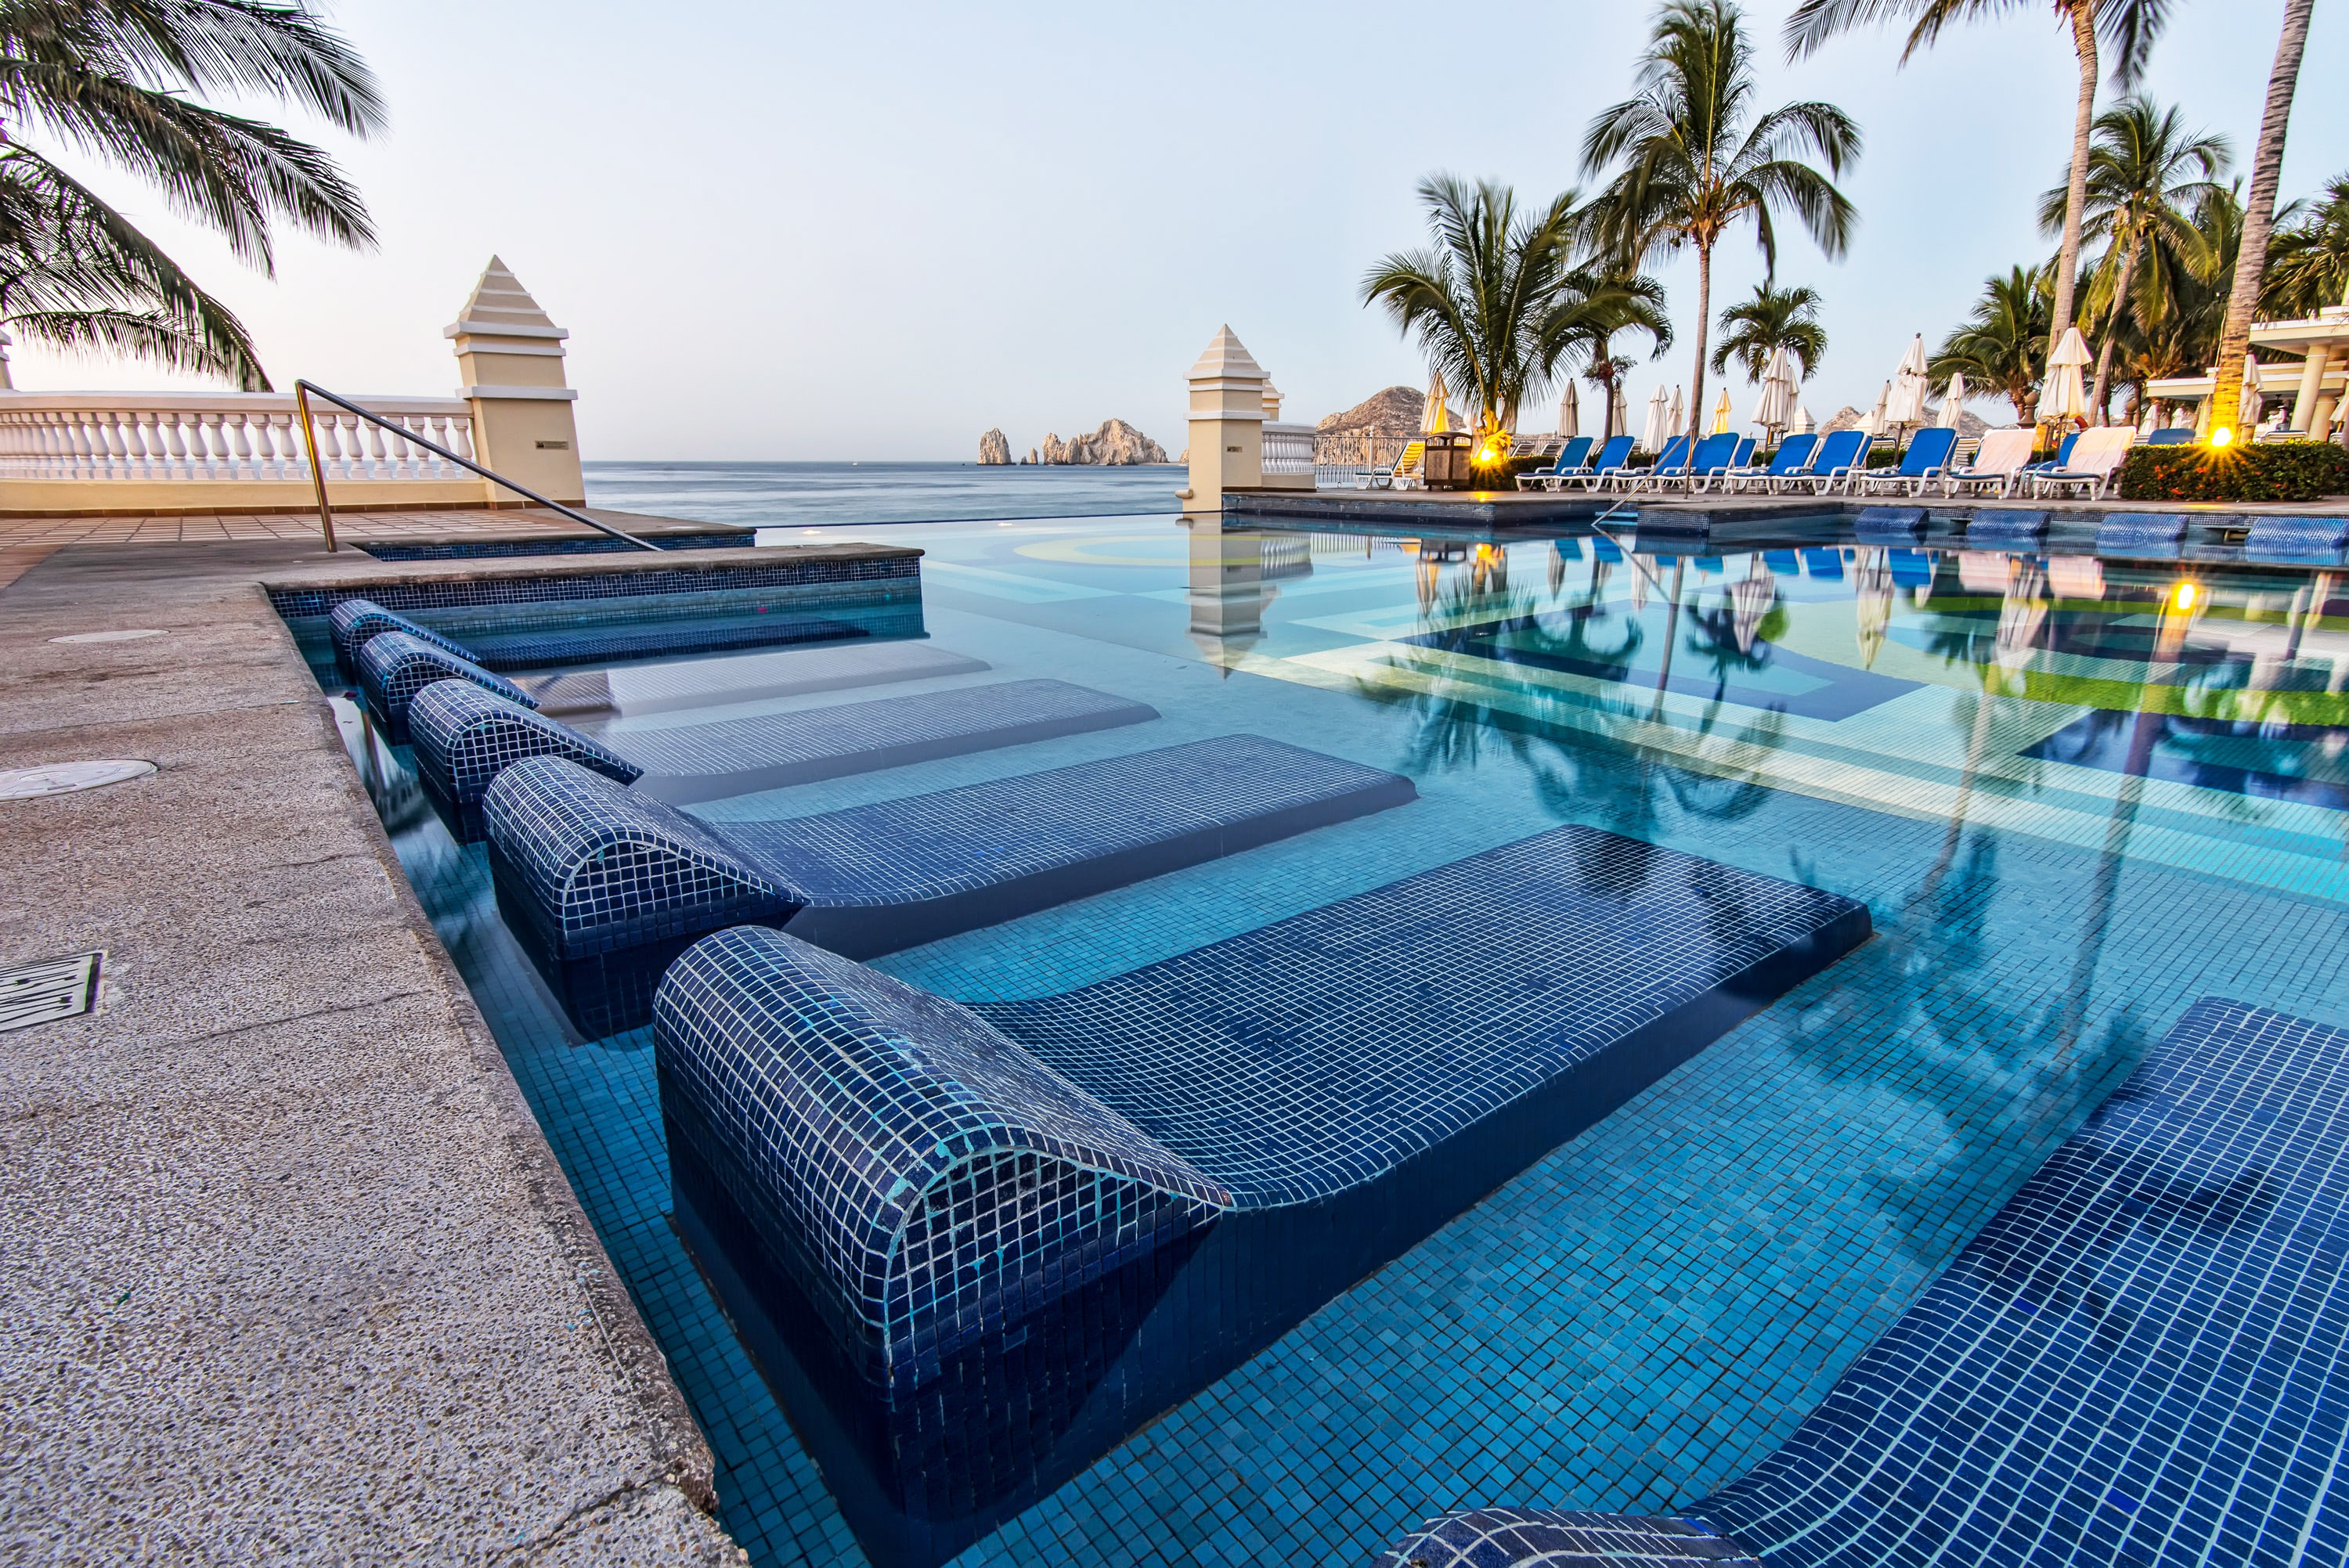 swimming pool at a resort hotel in cabo san lucas, mexico